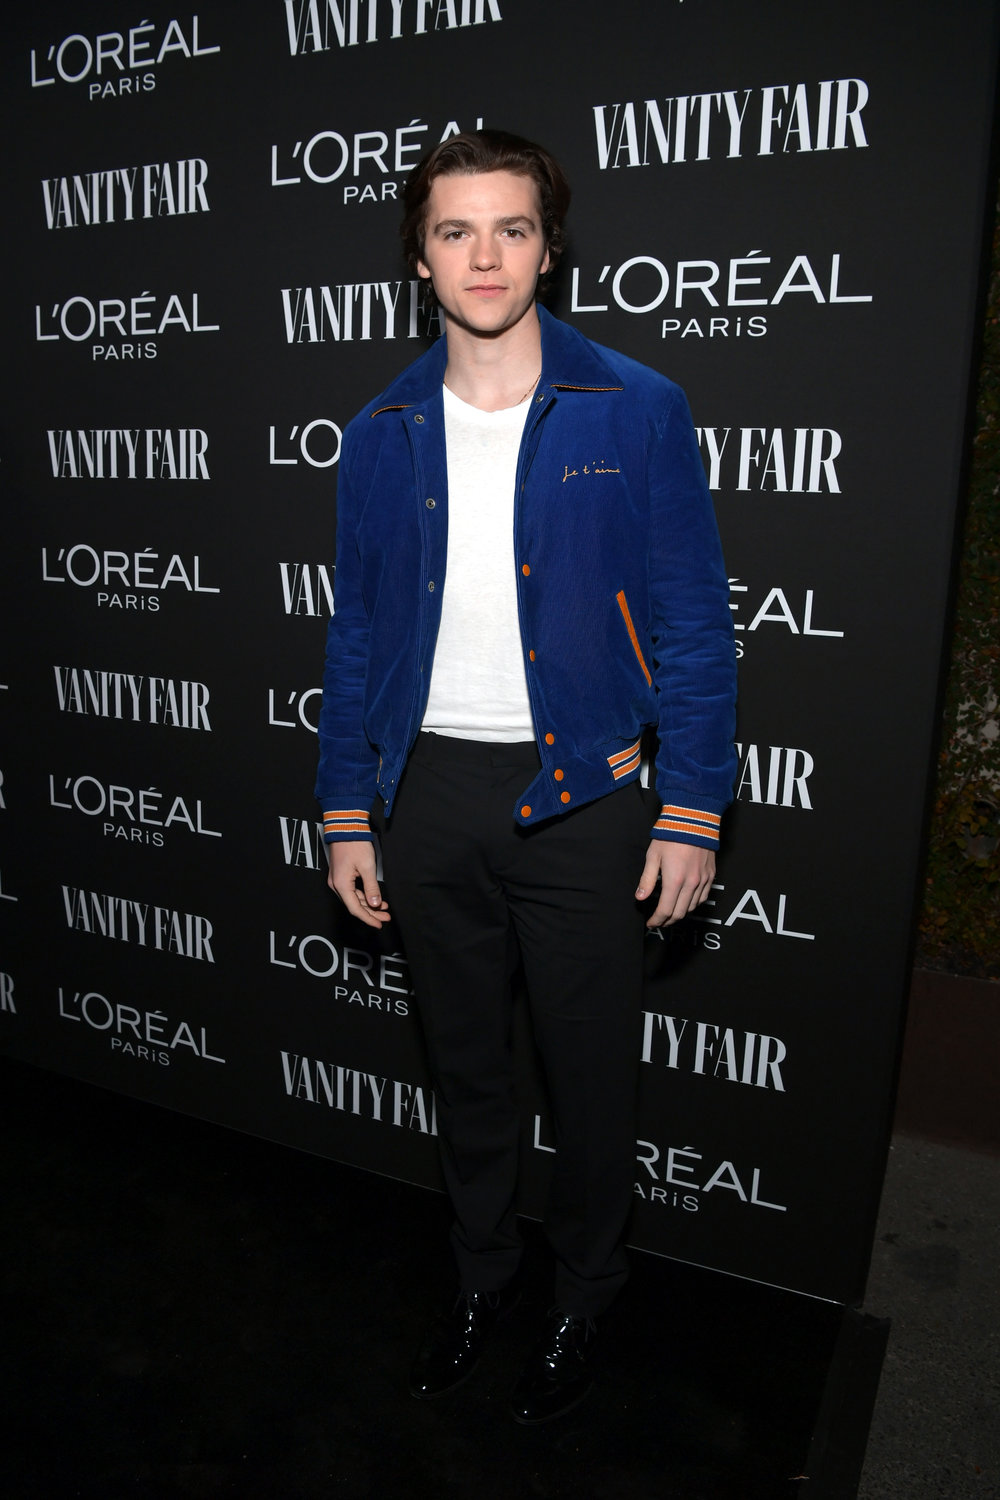 Vanity Fair And L'Oréal Paris Celebrate New Hollywood  WEST HOLLYWOOD, CA - FEBRUARY 19: Joel Courtney is seen as Vanity Fair and L'Oréal Paris Celebrate New Hollywood on February 19, 2019 in Los Angeles, California. (Photo by Emma McIntyre/Getty Images for Vanity Fair)